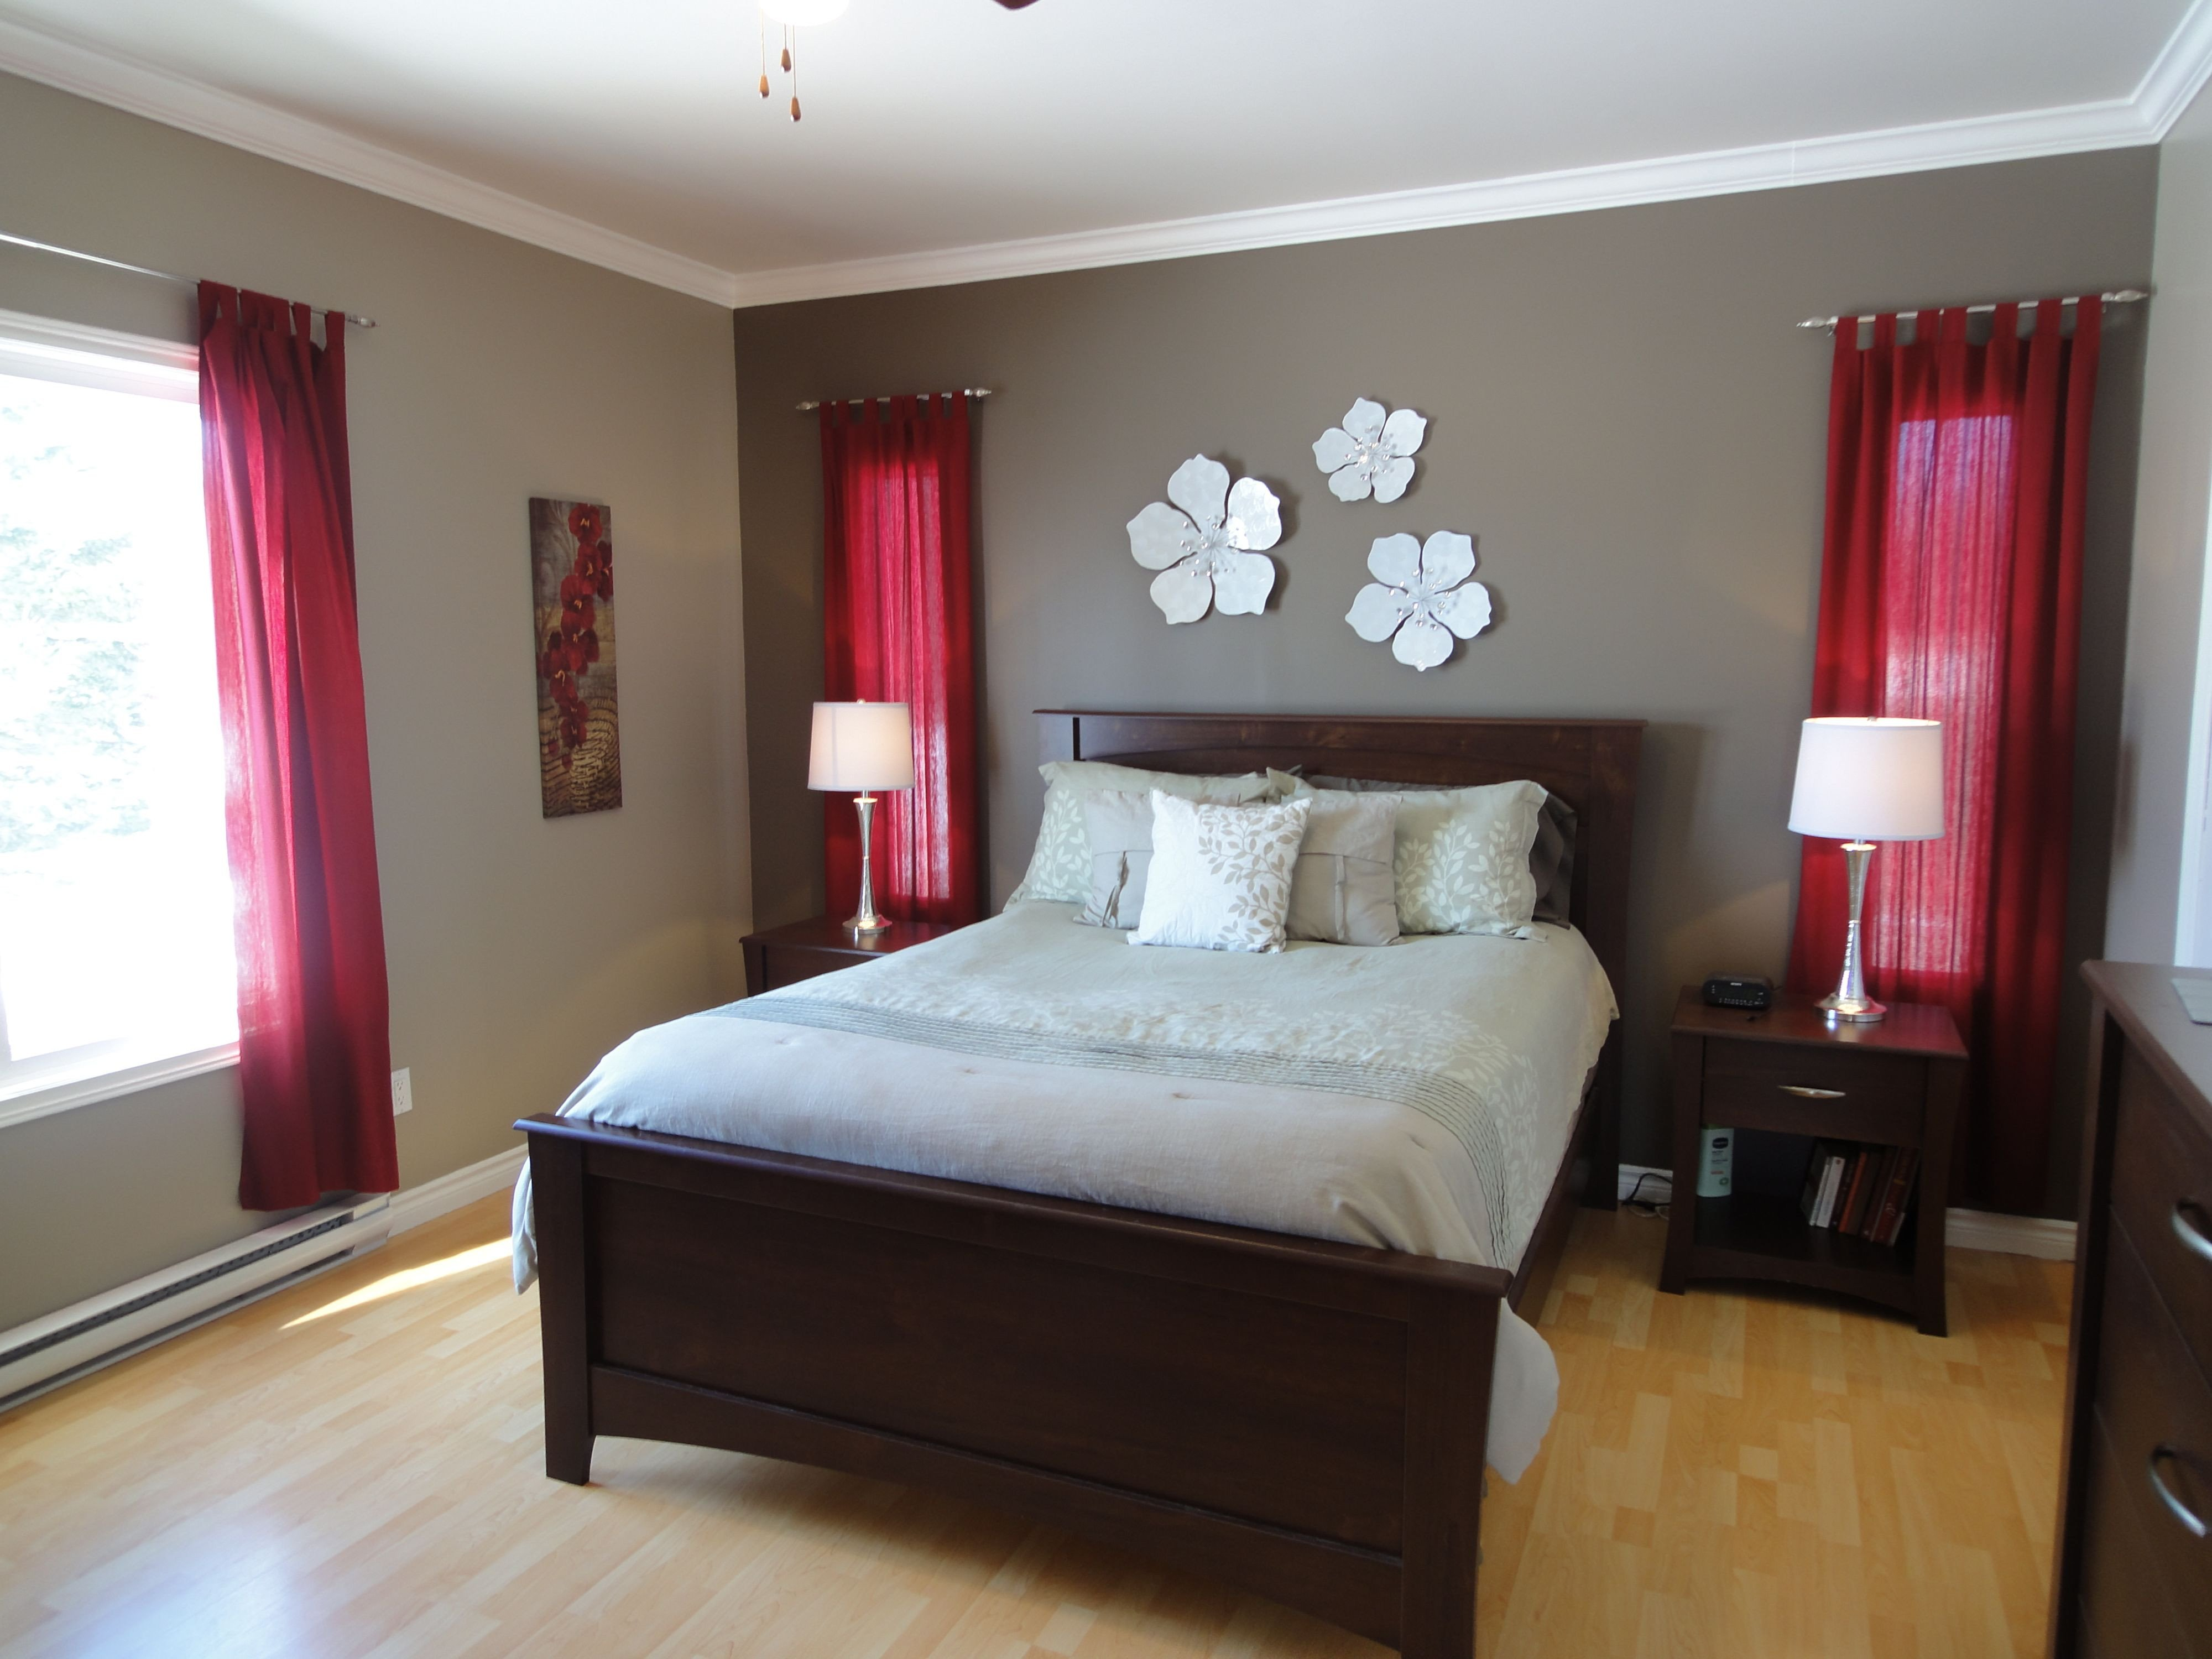 Grey and Burgundy Bedroom Elegant I Just Decorated Our Guest Bedroom with Red Accents I Would